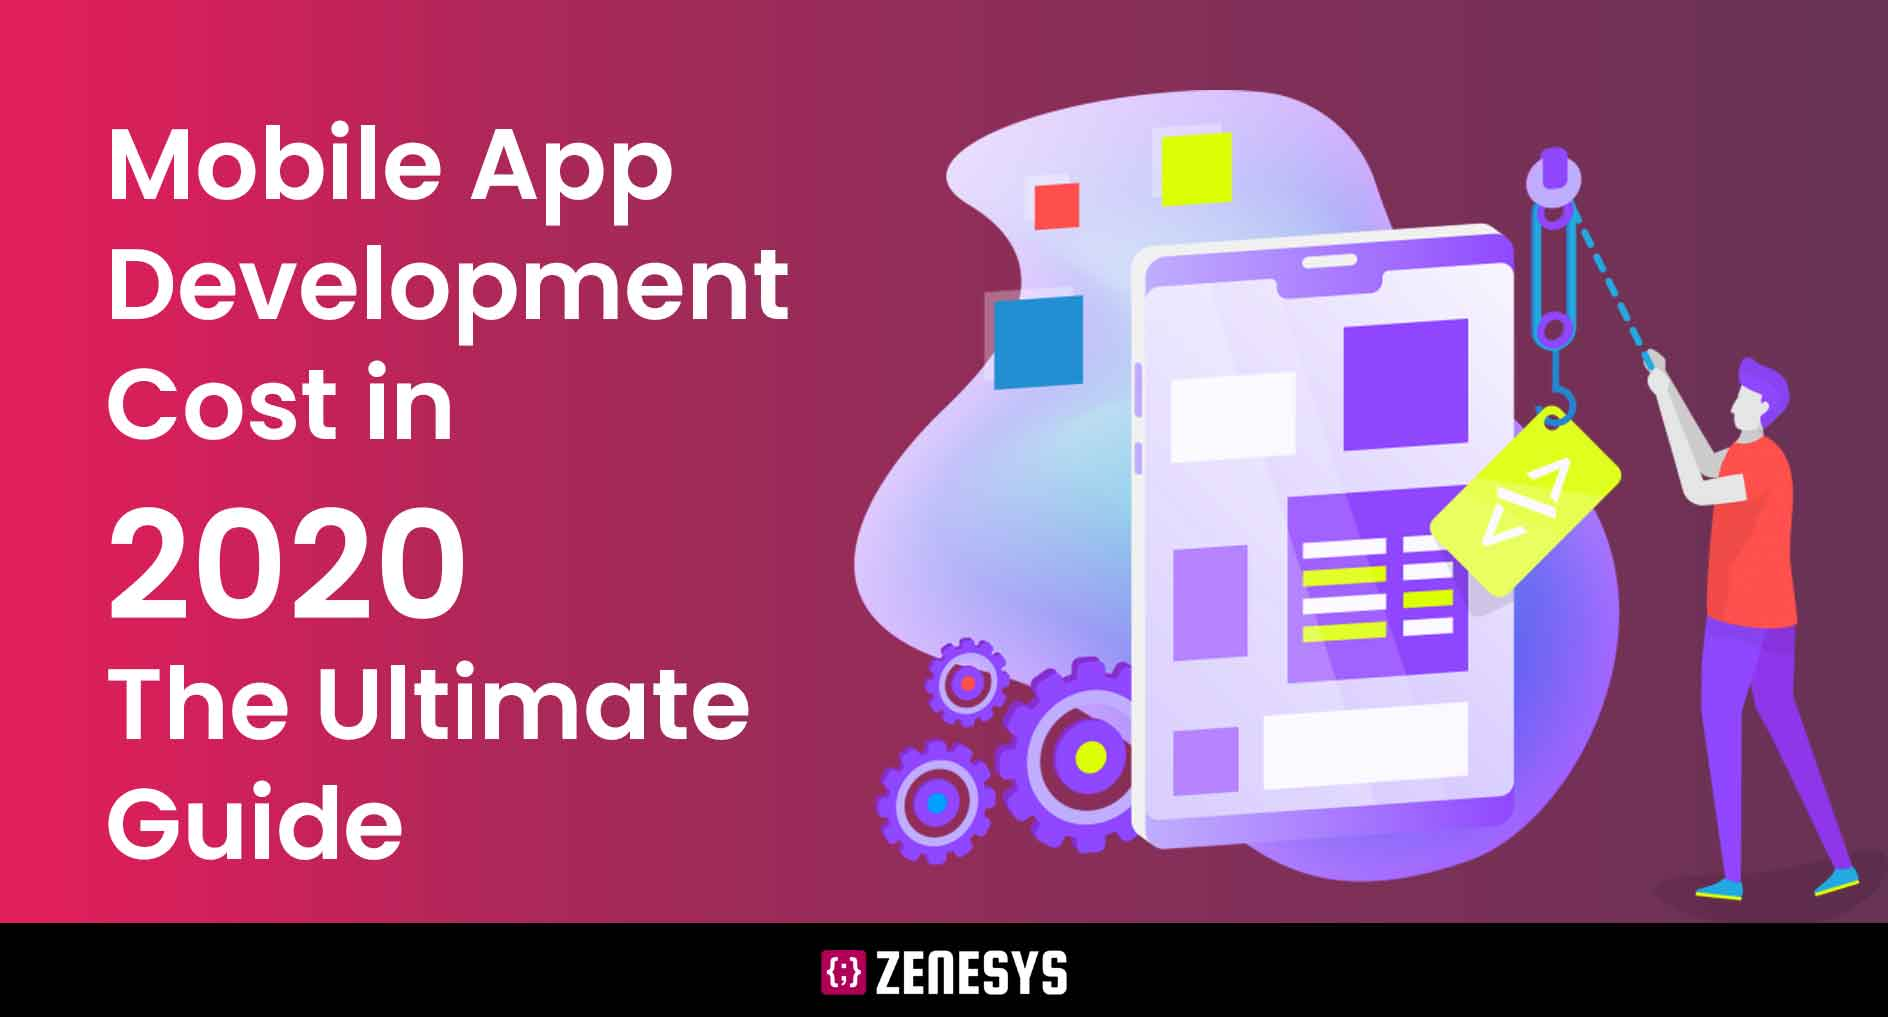 Mobile App Development Cost in 2020 – The Ultimate Guide